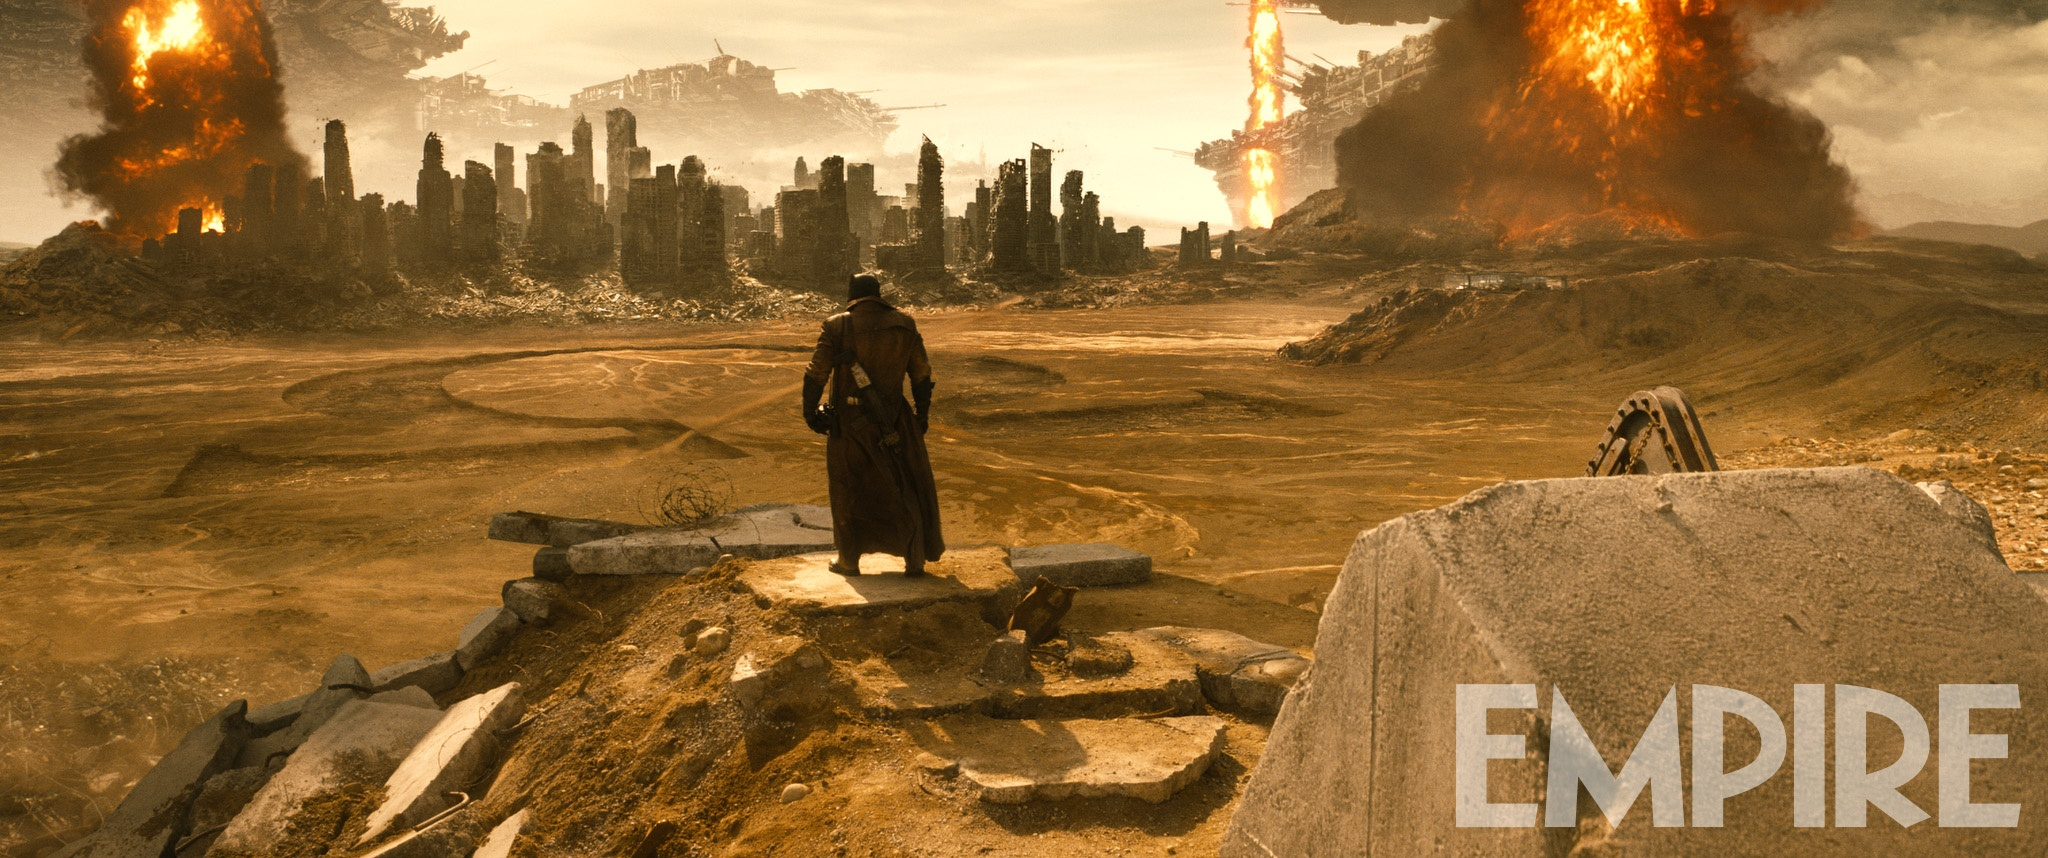 batman-vs-superman-image-4